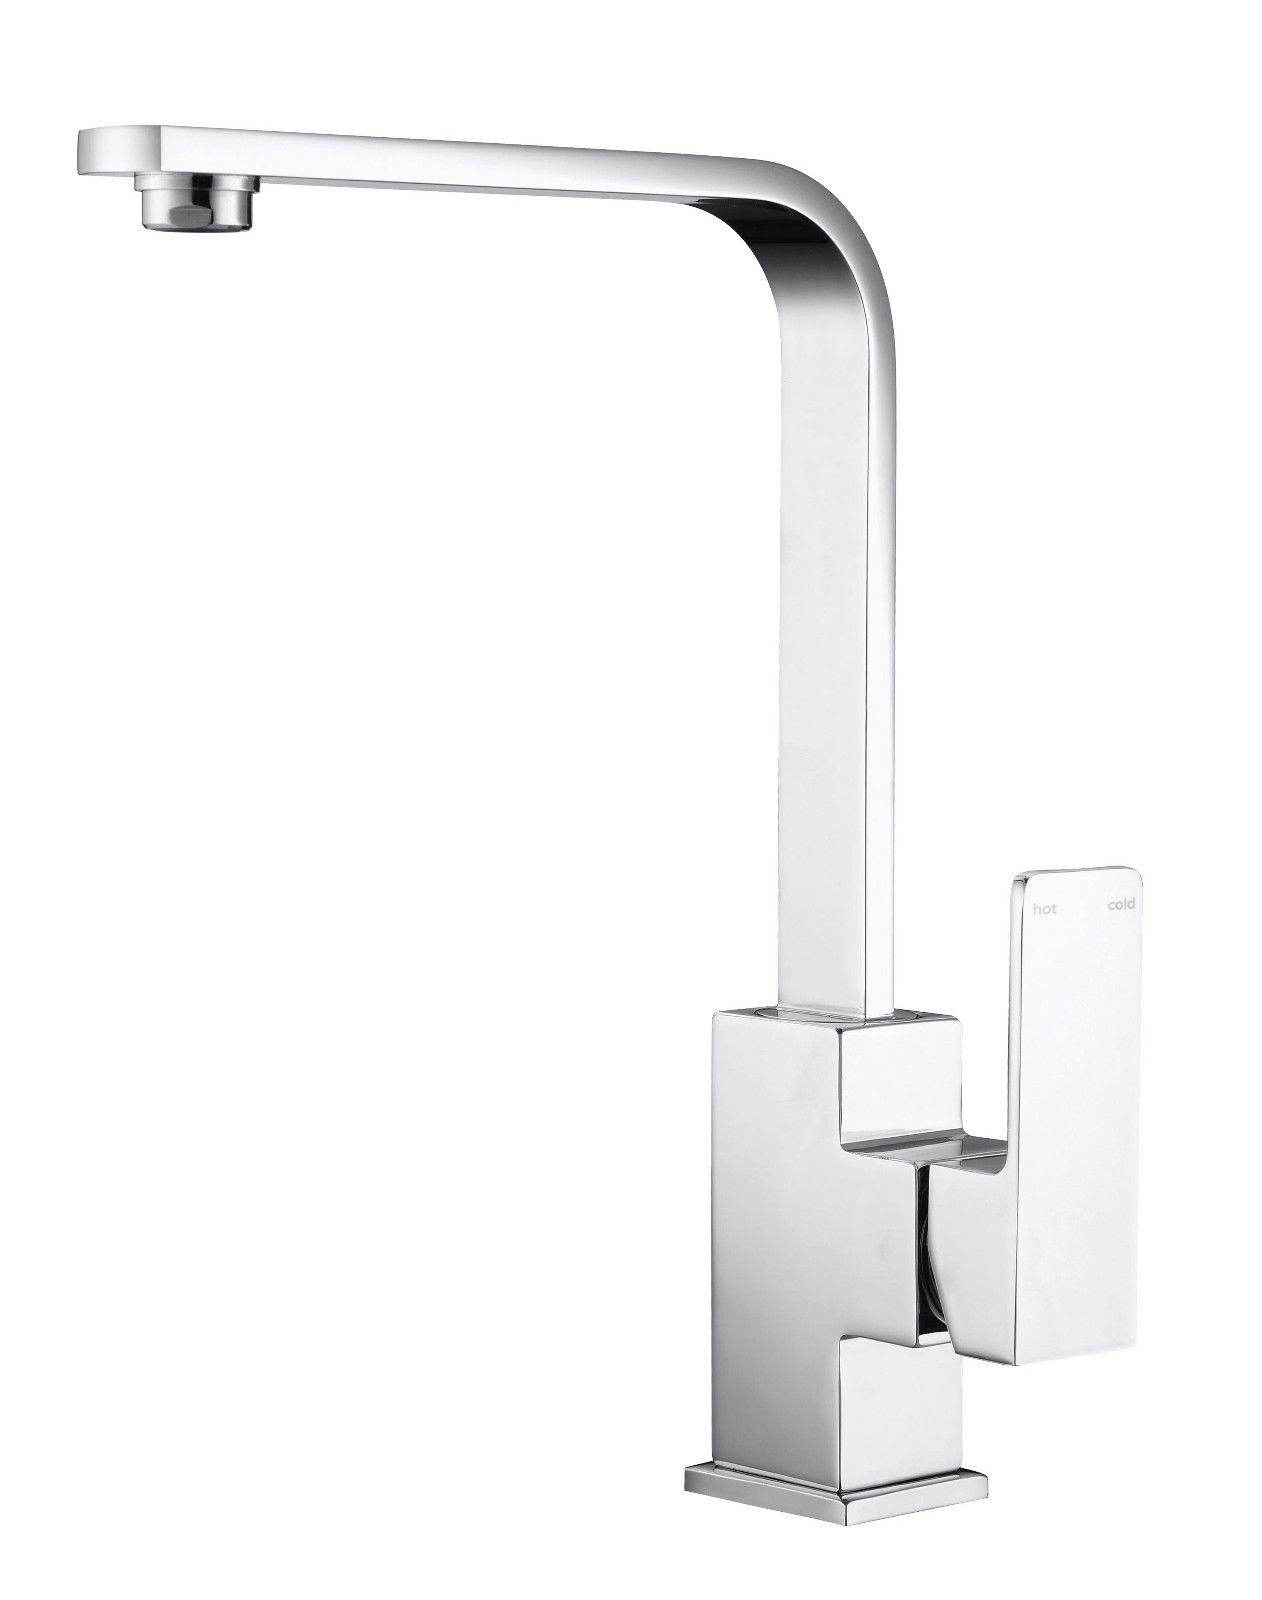 Wels square swivel kitchen mixer laundry tap